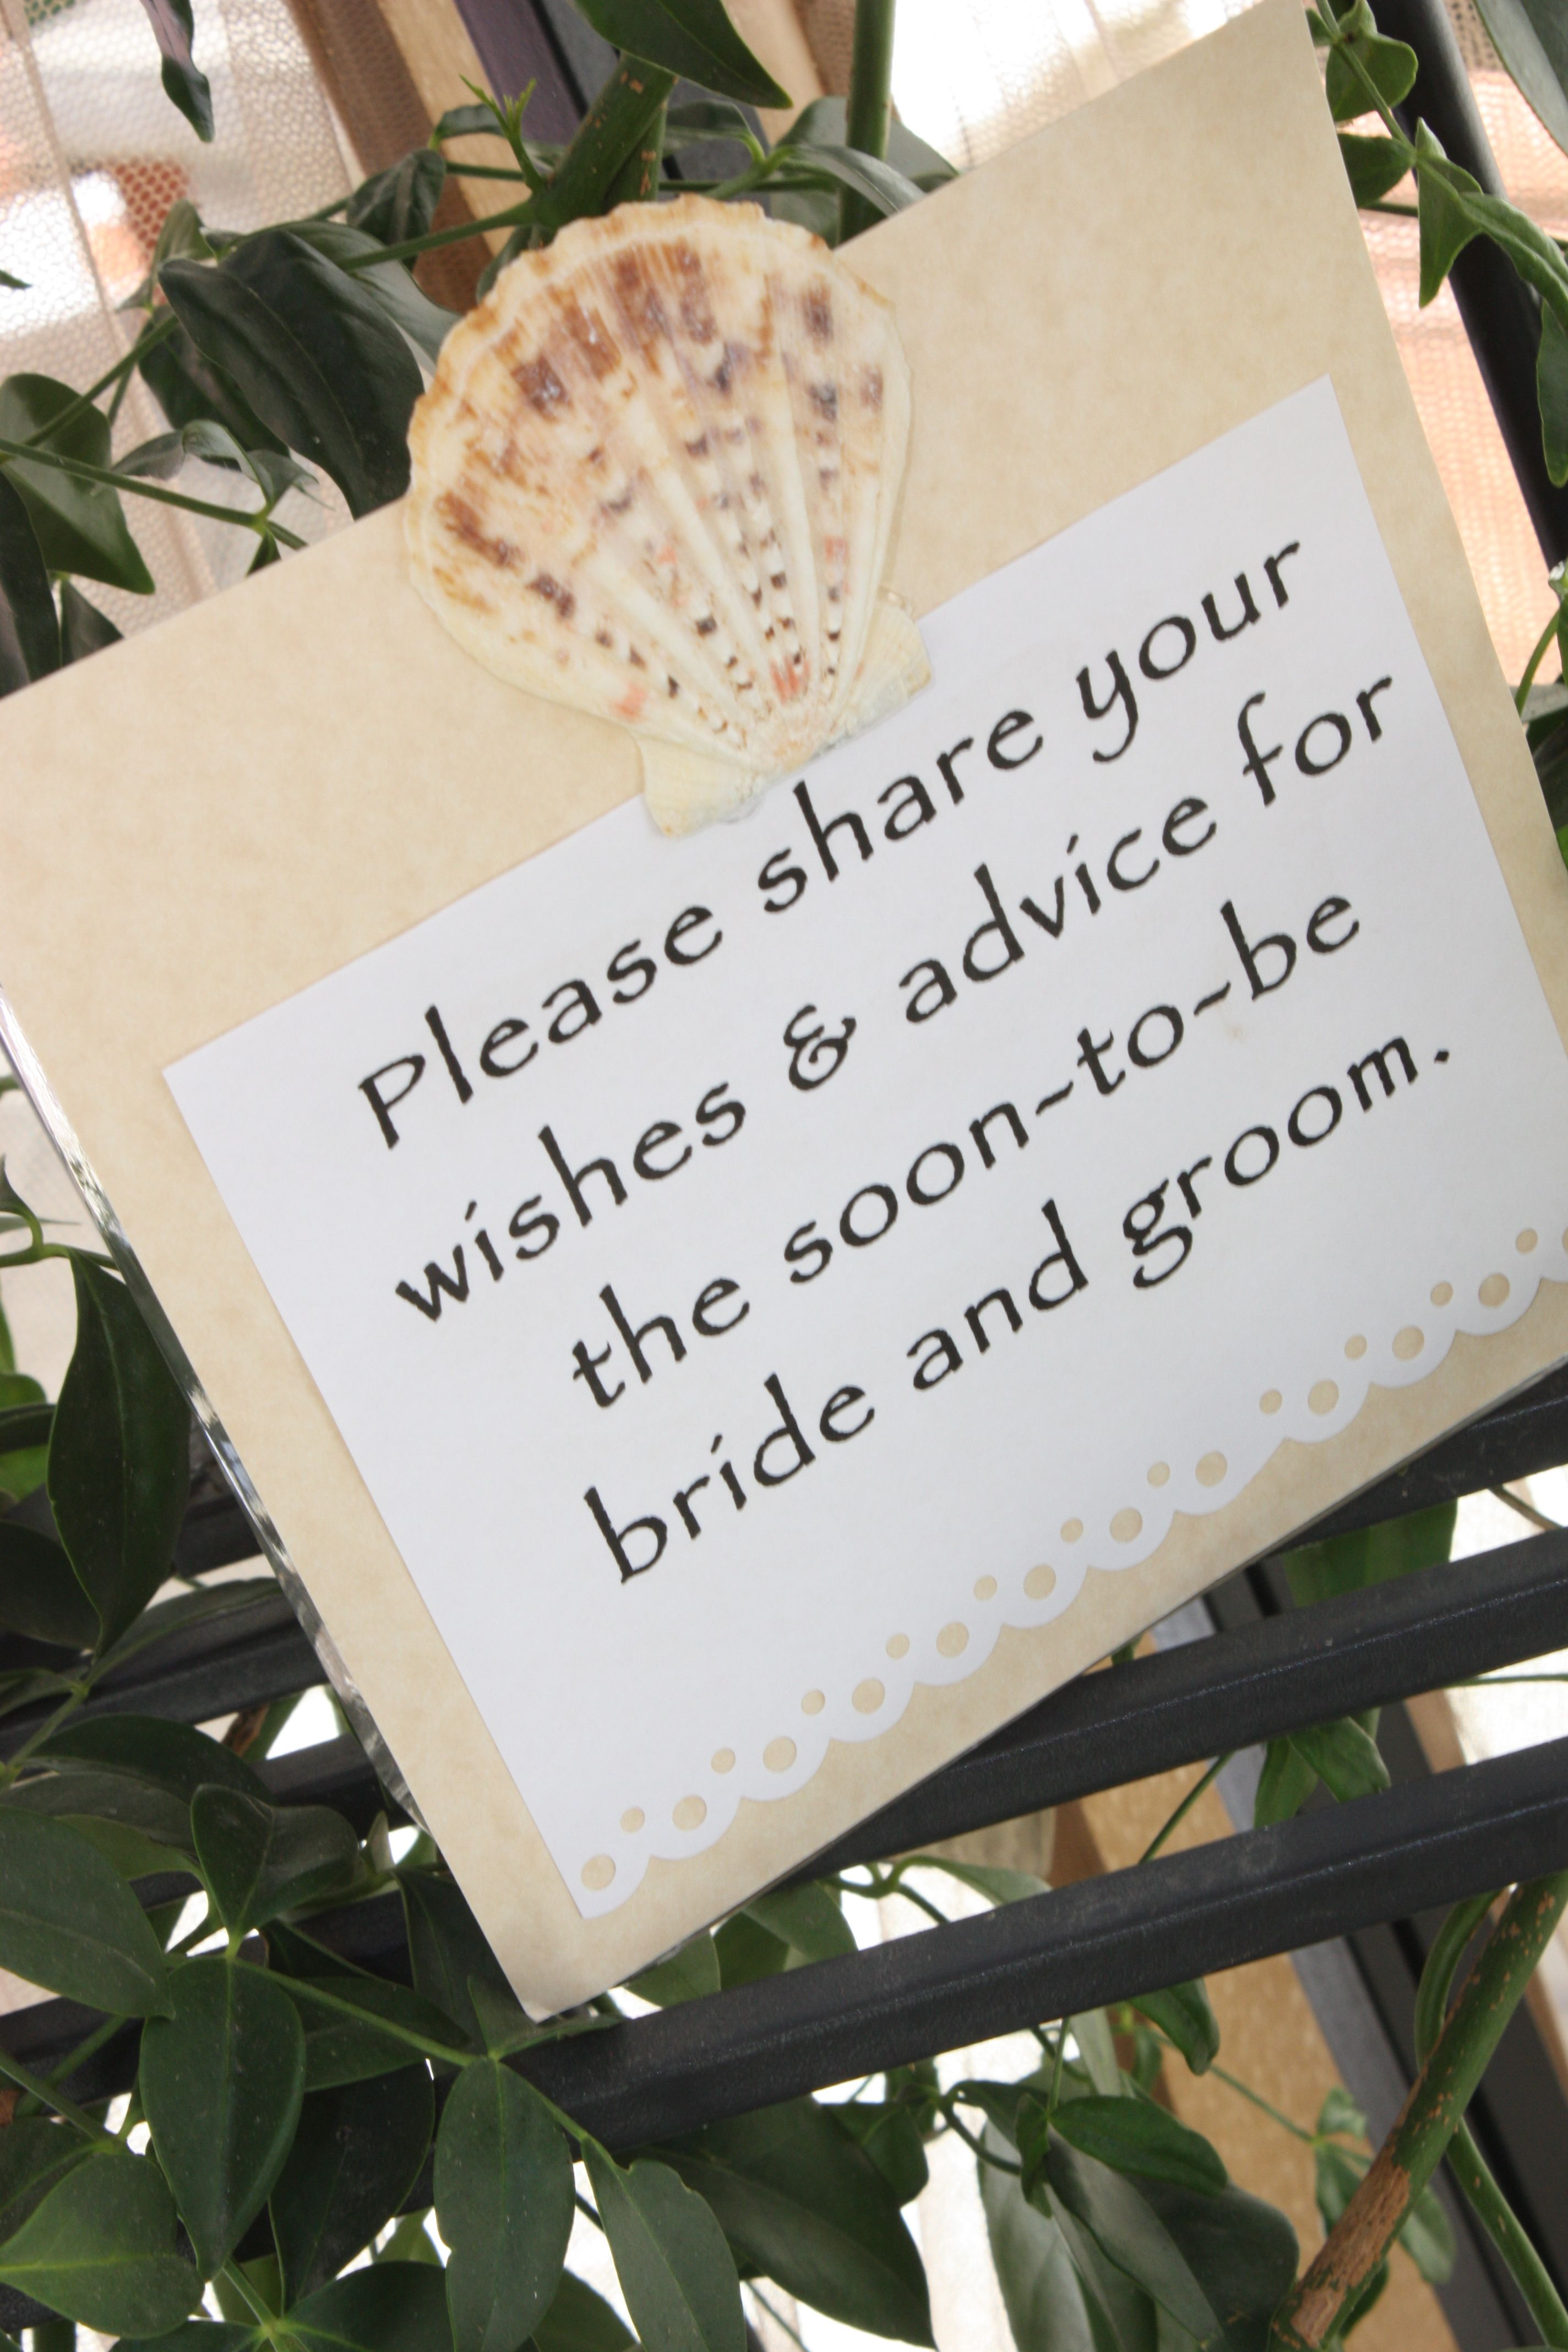 bridal shower - thoughtful gifts for the bride and groom made by all ...